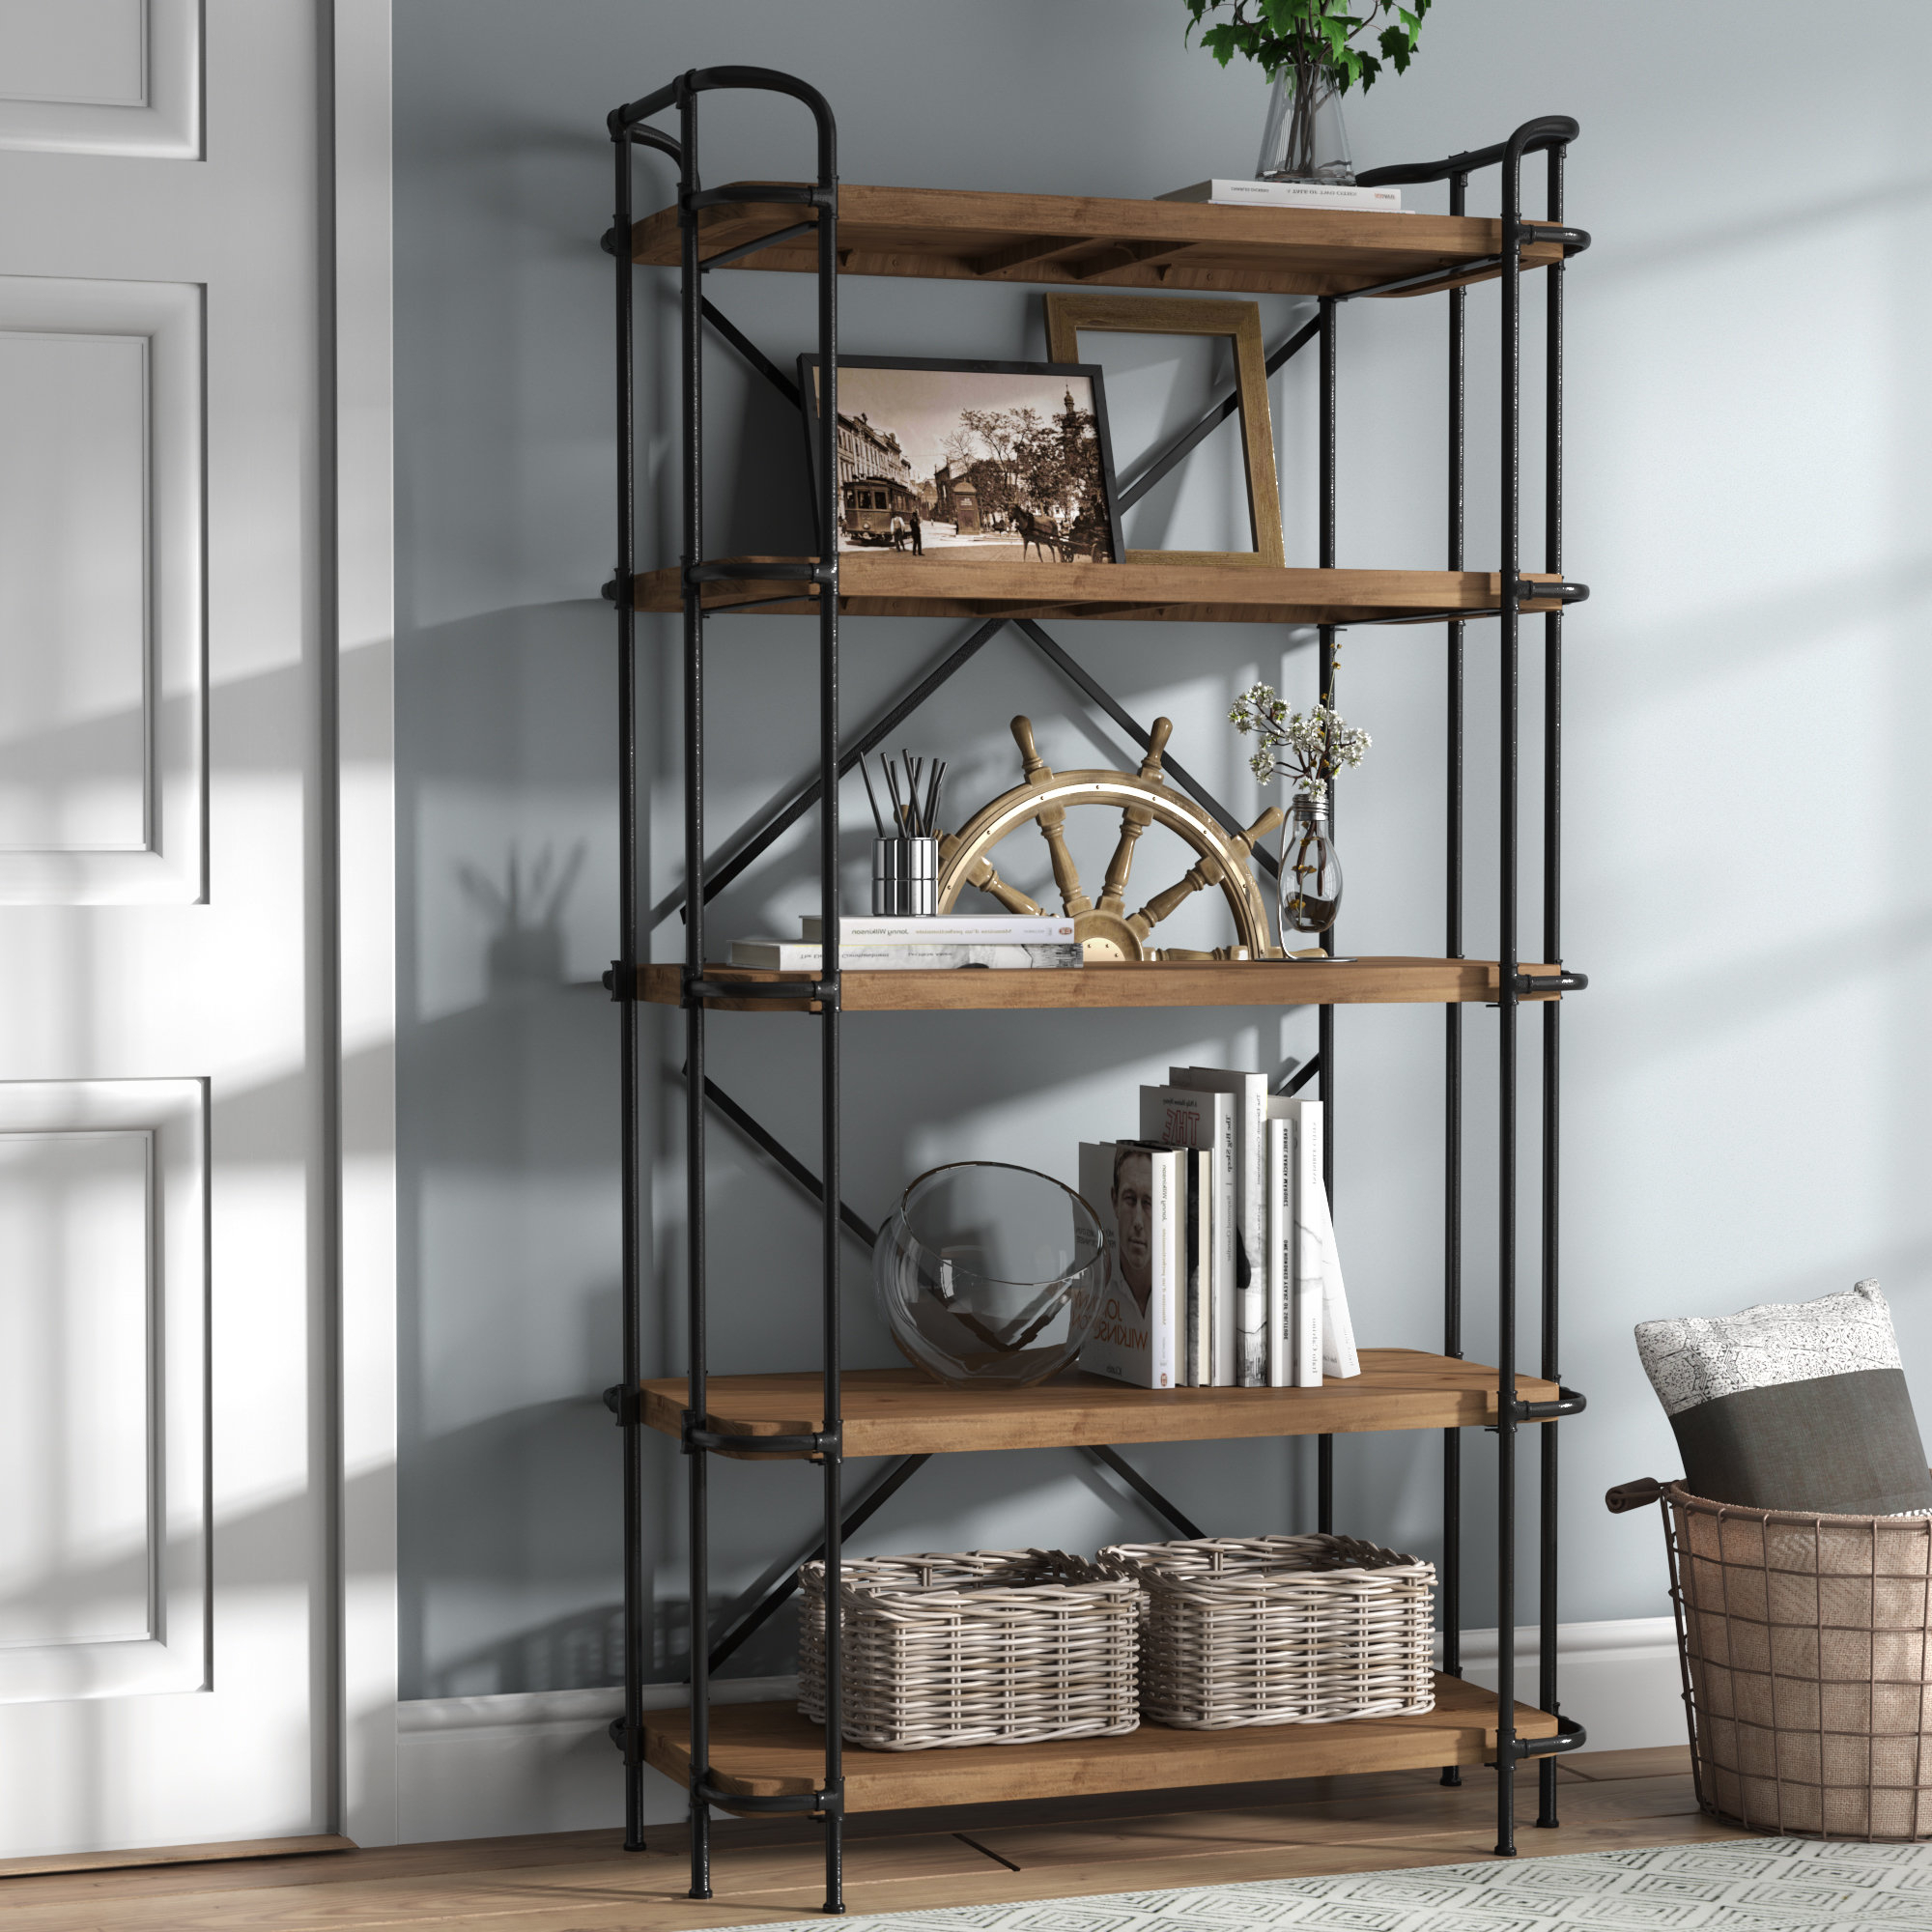 Parthenia Etagere Bookcases Pertaining To Most Up To Date Laurel Foundry Modern Farmhouse Ebba Etagere Bookcase (View 12 of 20)